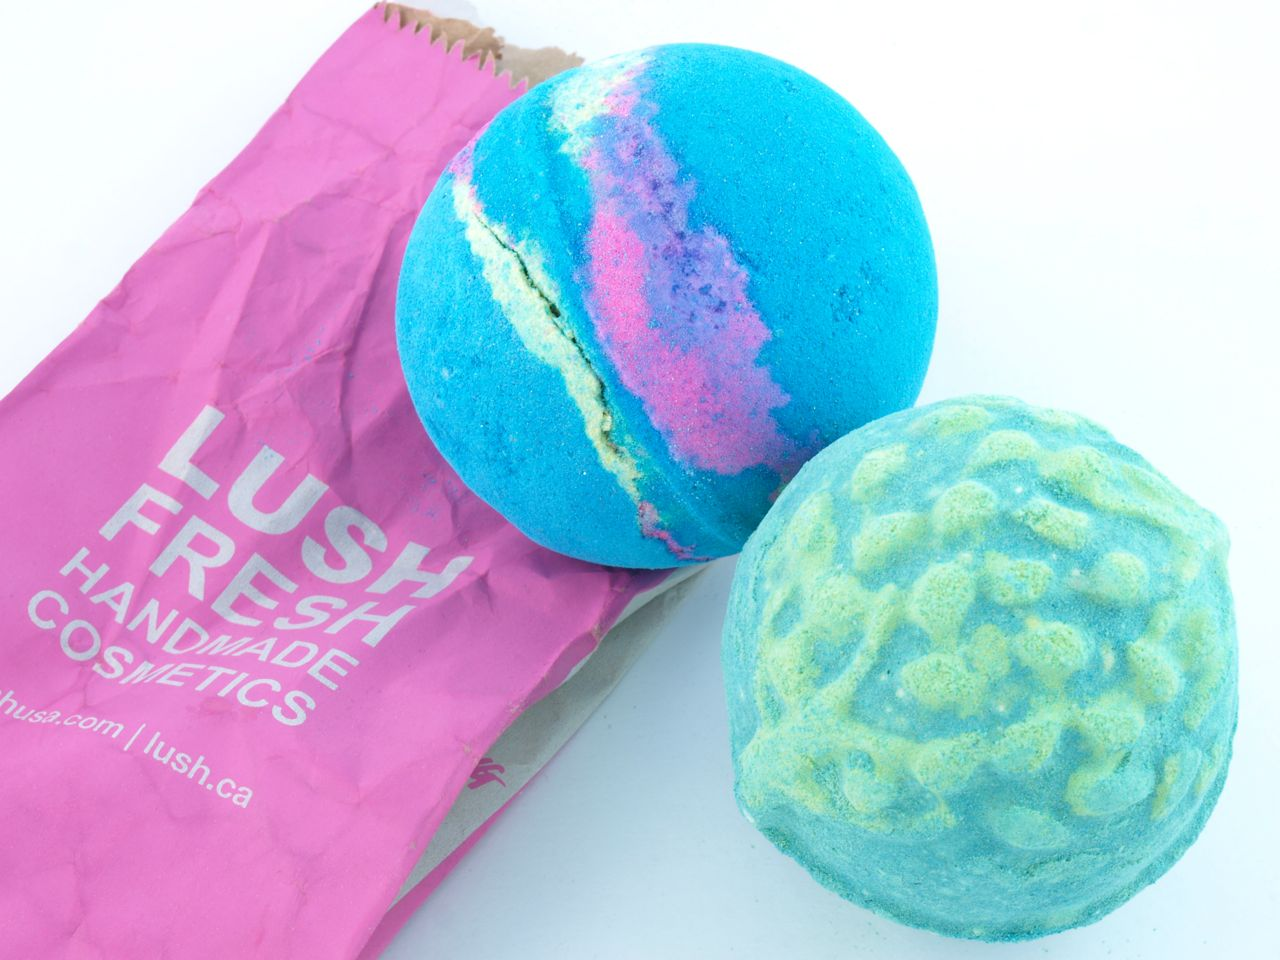 lush intergalactic guardian of the forest bath bombs review